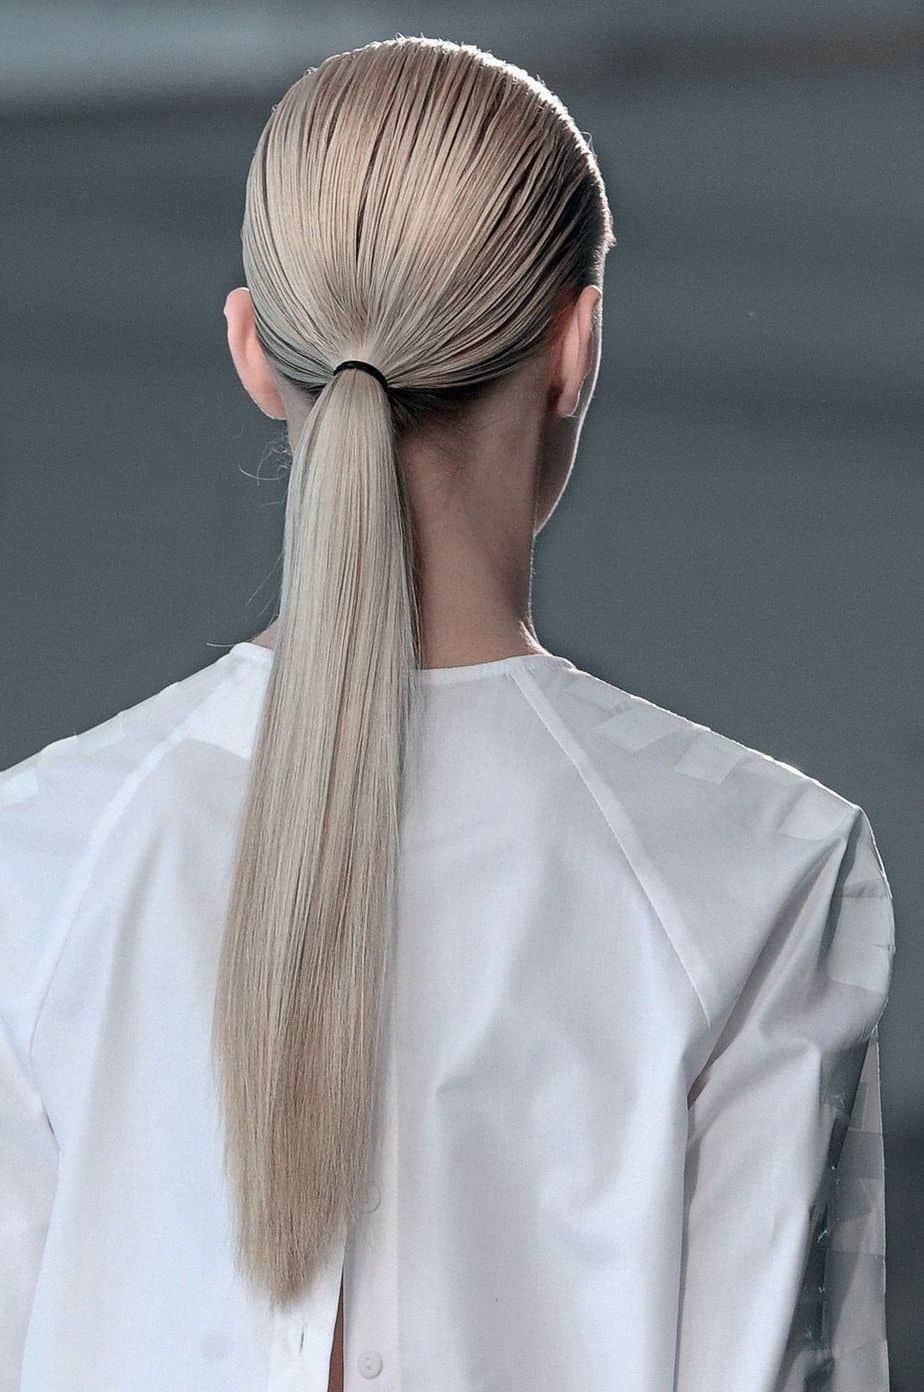 Trendy Hairstyles for Women in 2021 Low Ponytail